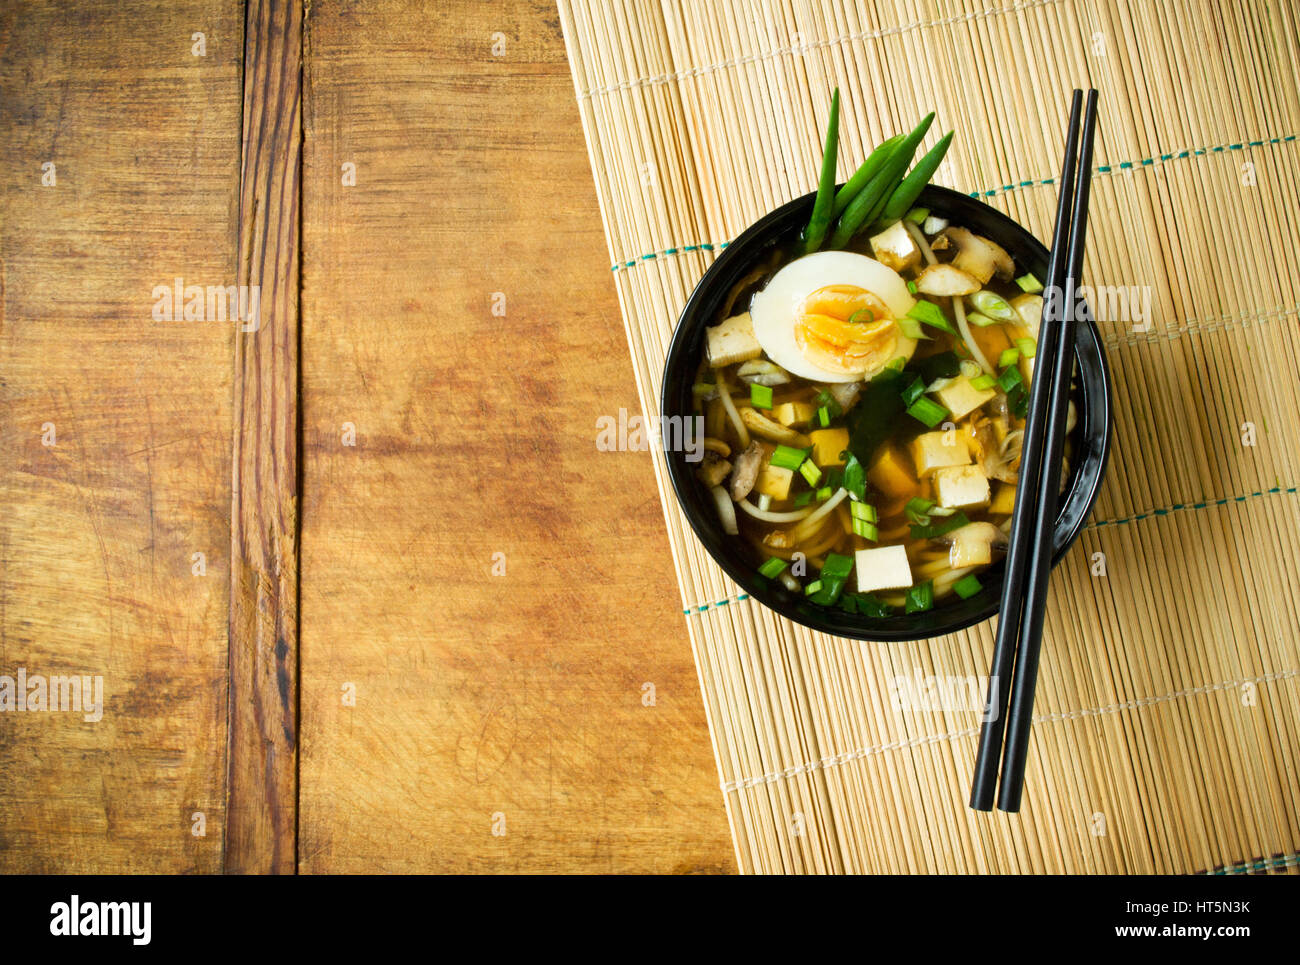 Japanese miso soup in black cup on bamboo mat background - Stock Image